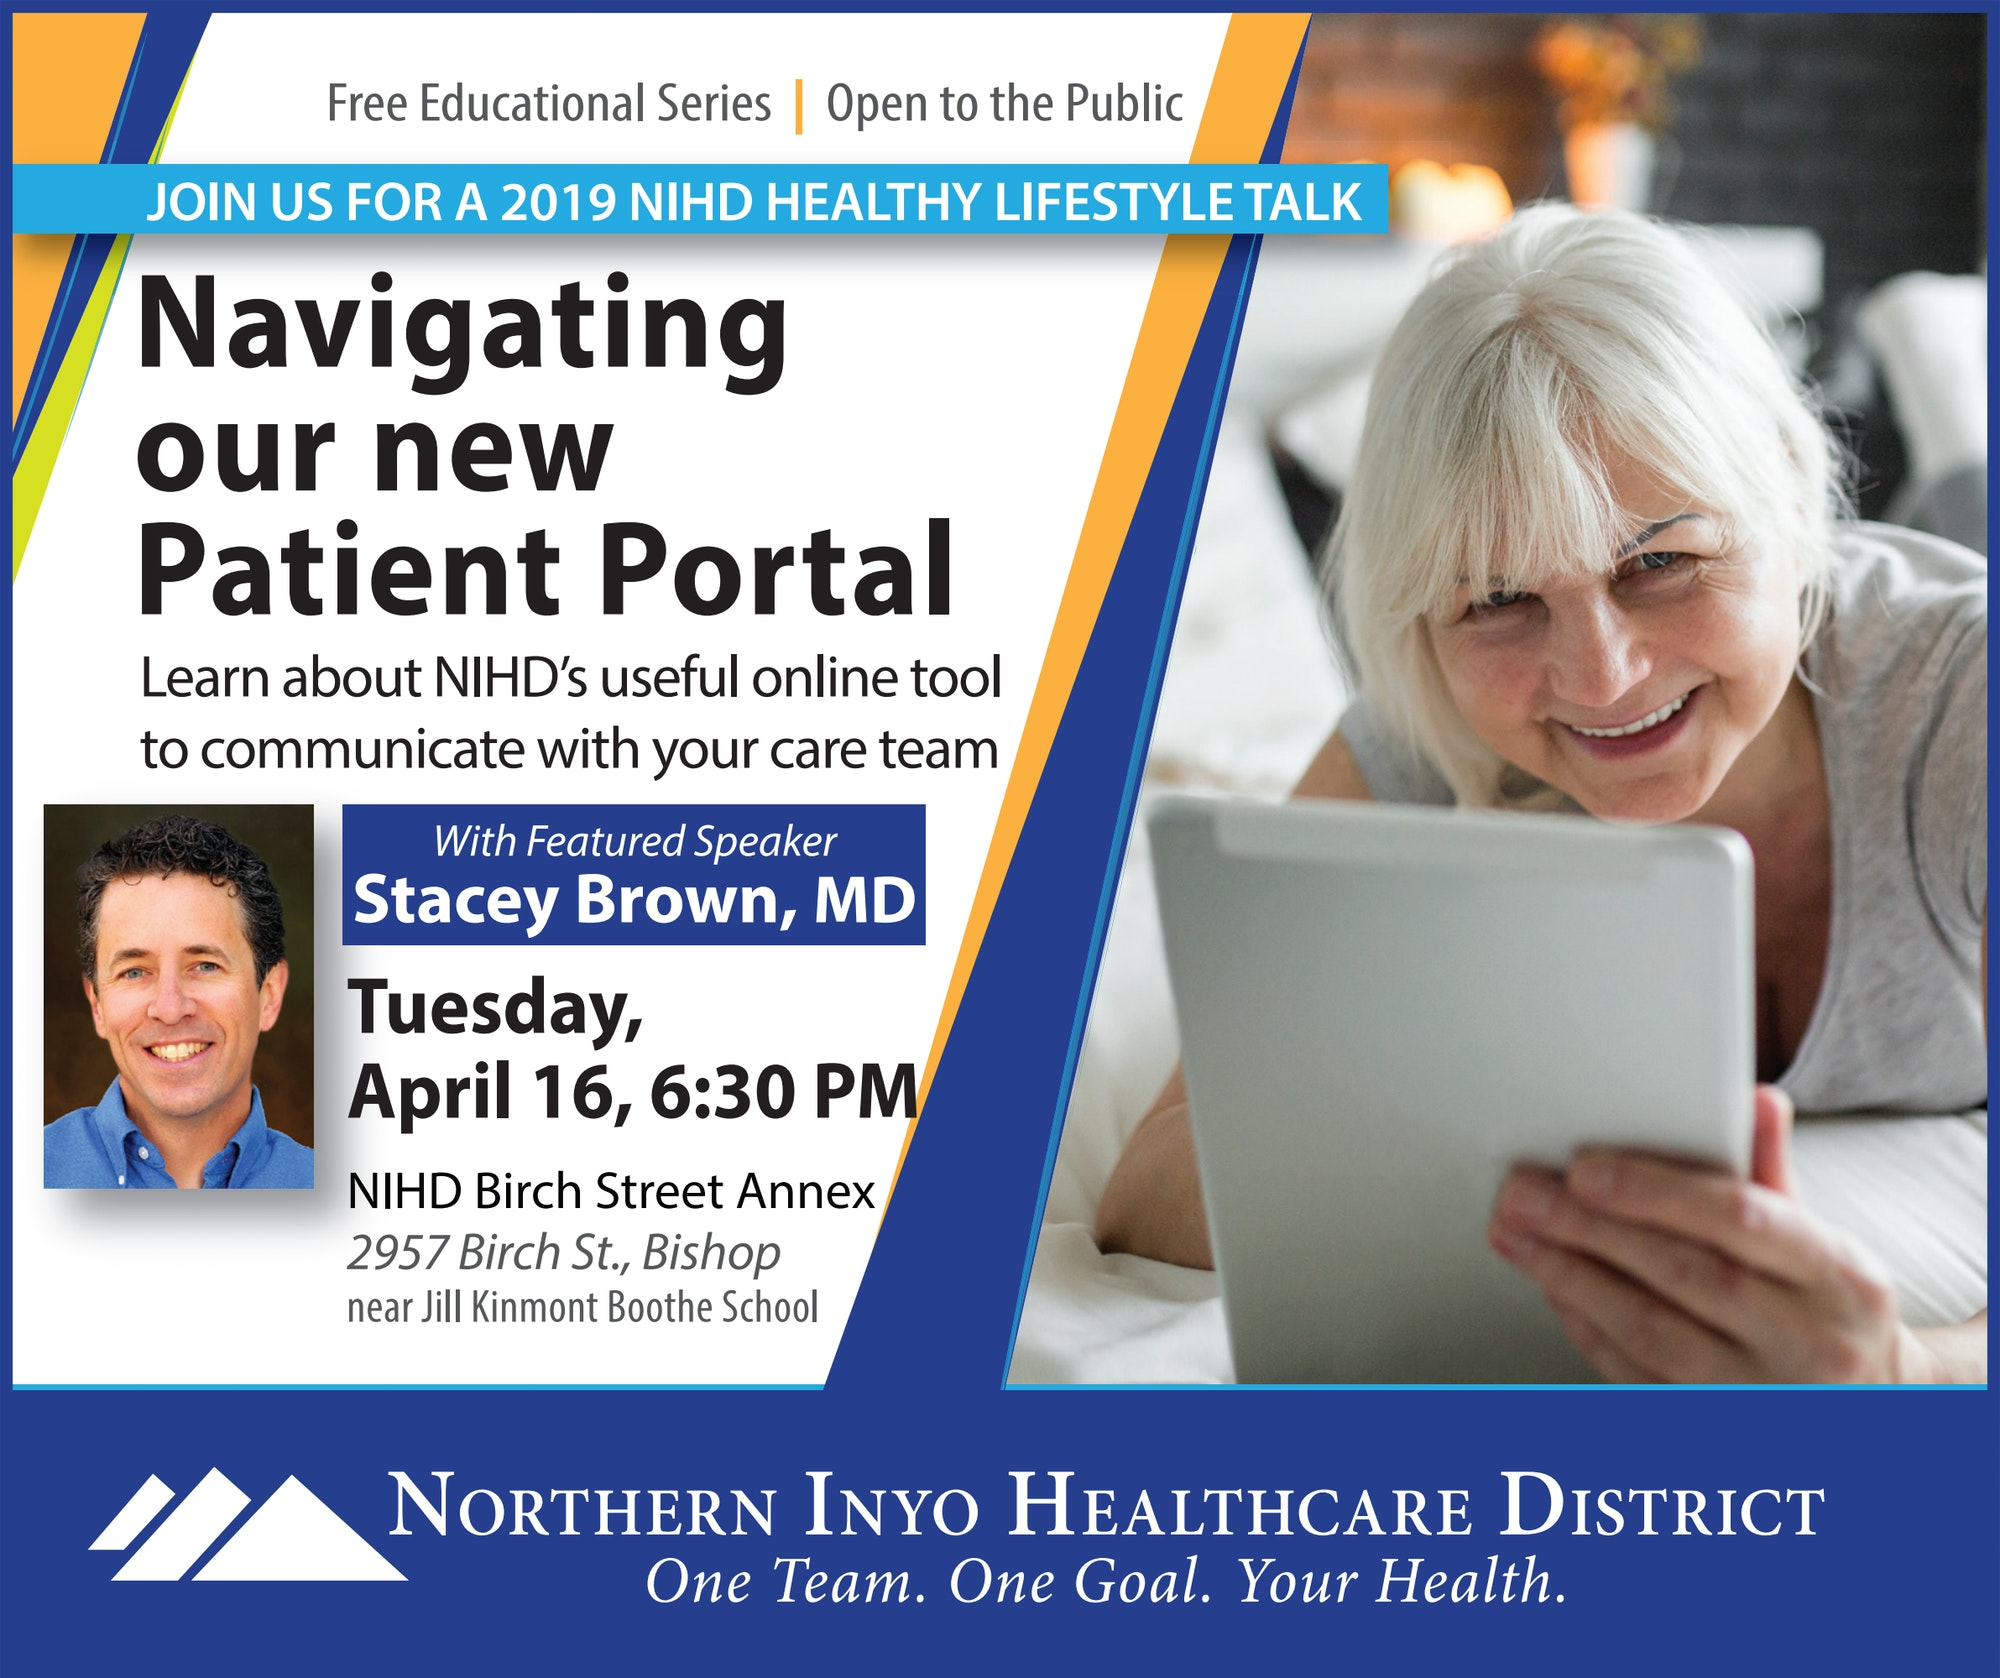 Poster for Patient Portal Healthy Lifestyle Talk for April 16